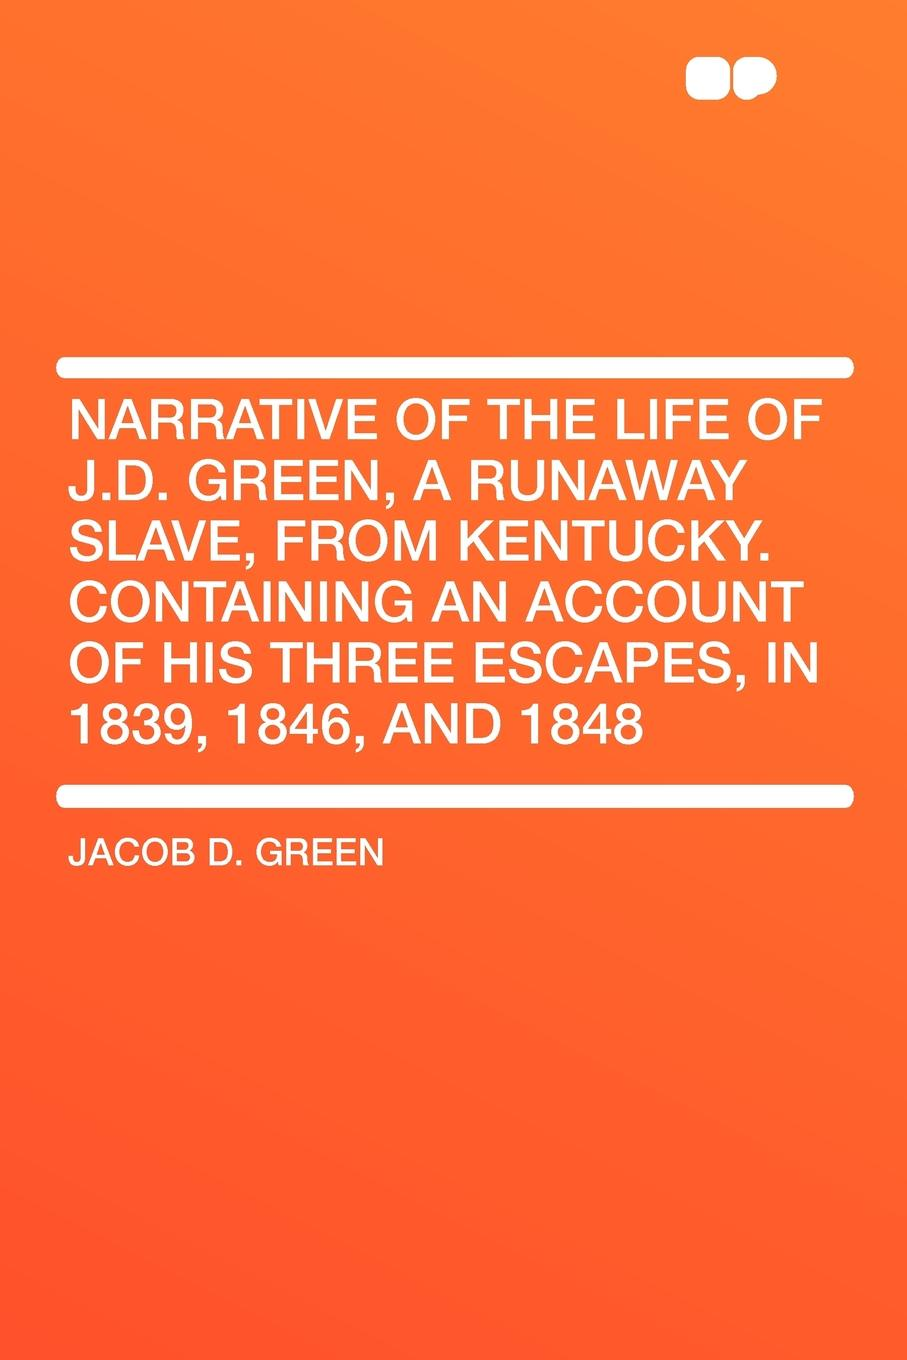 Jacob D. Green Narrative of the Life of J.D. Green, a Runaway Slave, from Kentucky. Containing an Account of His Three Escapes, in 1839, 1846, and 1848 june francis his runaway maiden